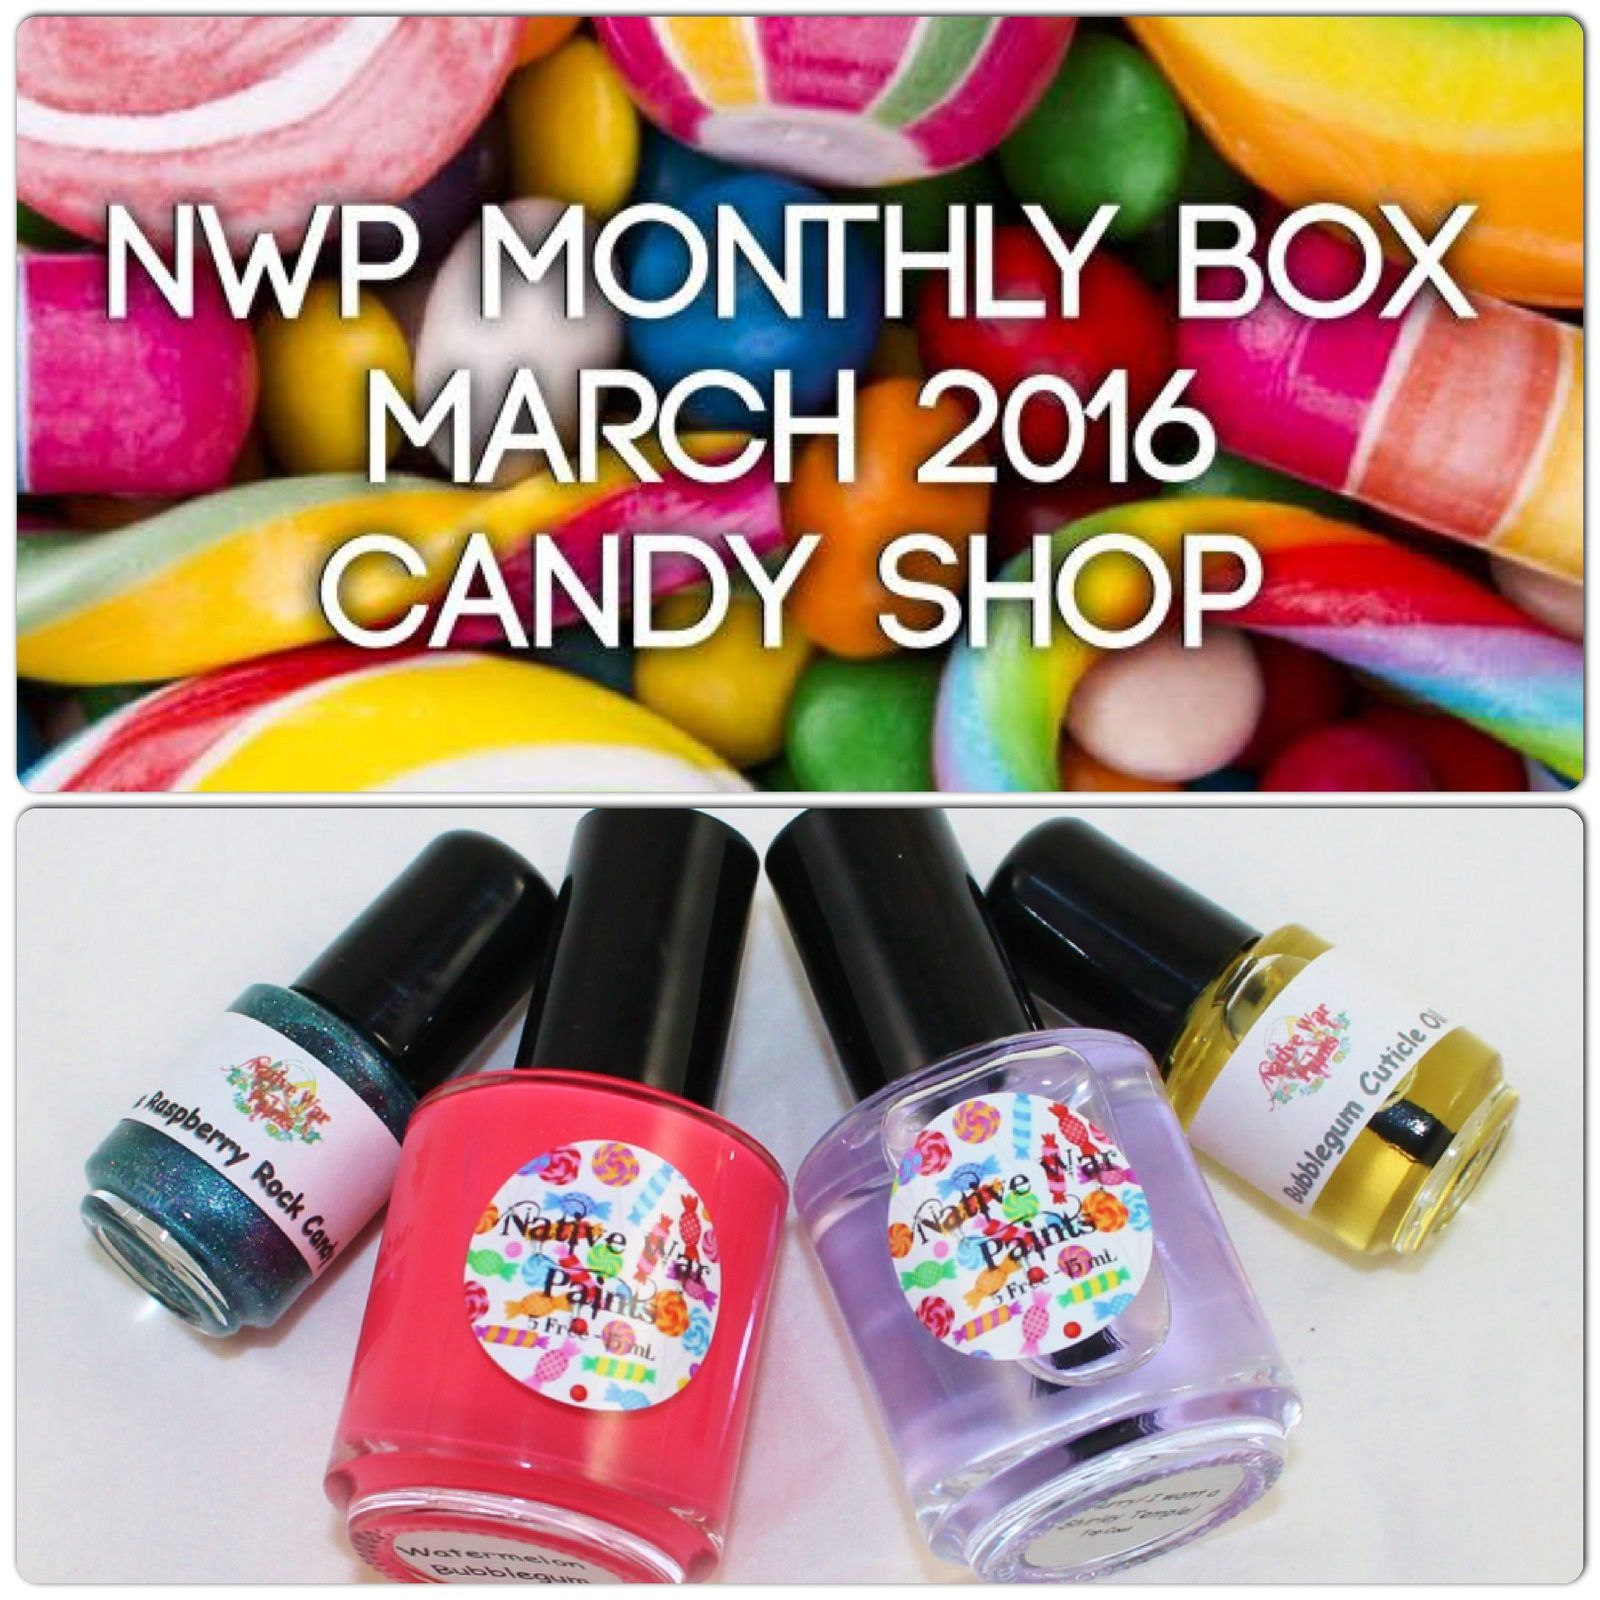 Native War Paints Monthly Box - March 2016 - Candy Shop